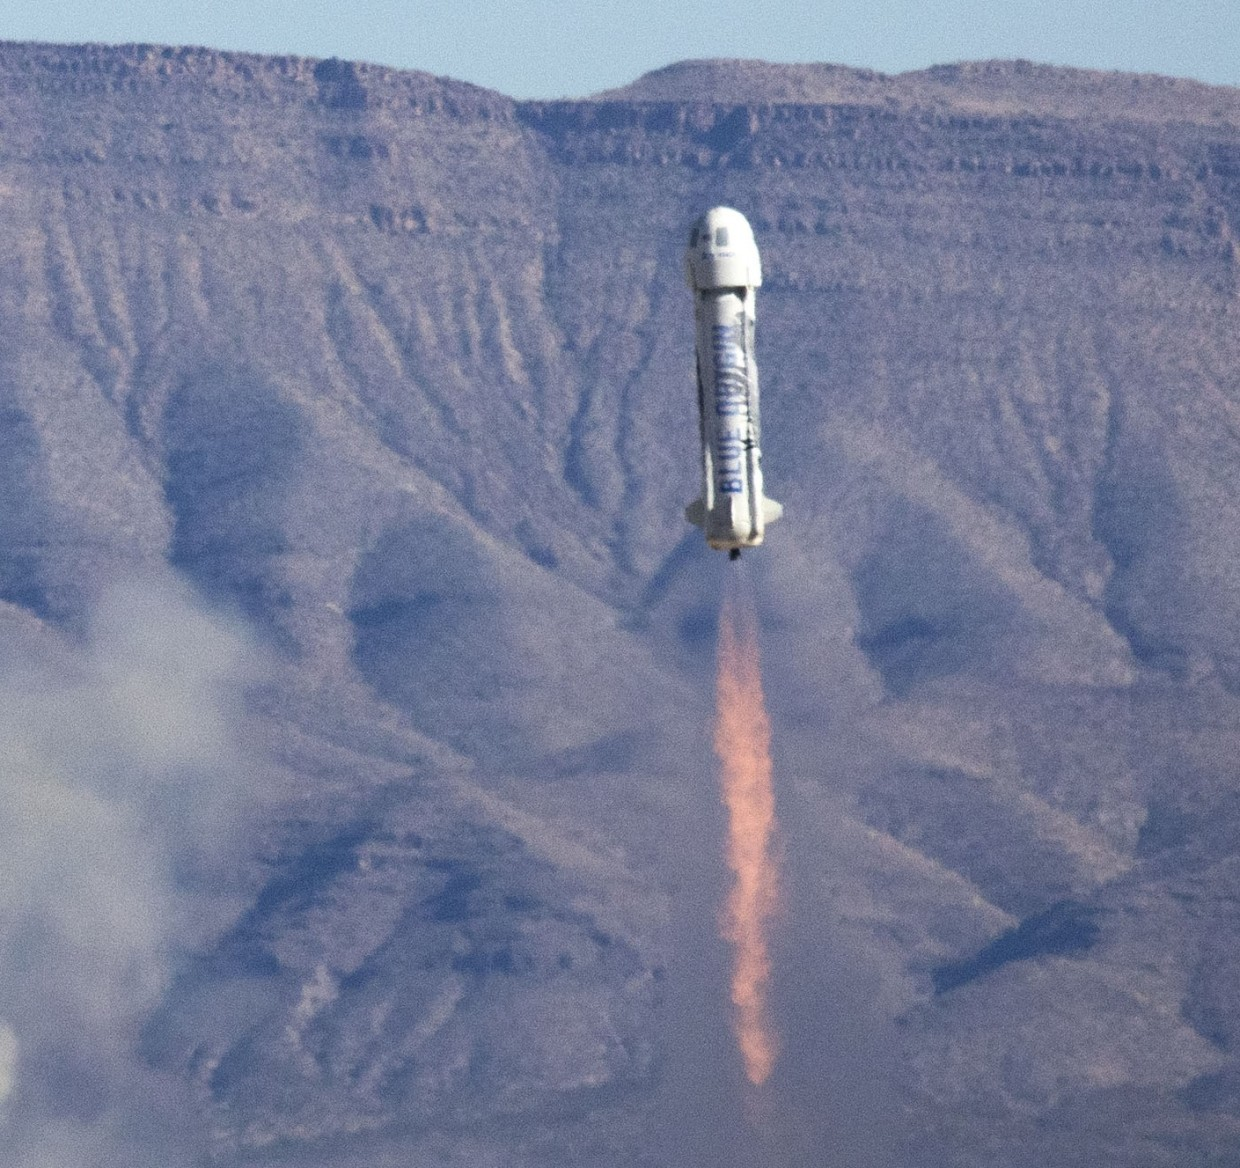 Liftoff of New Shepard